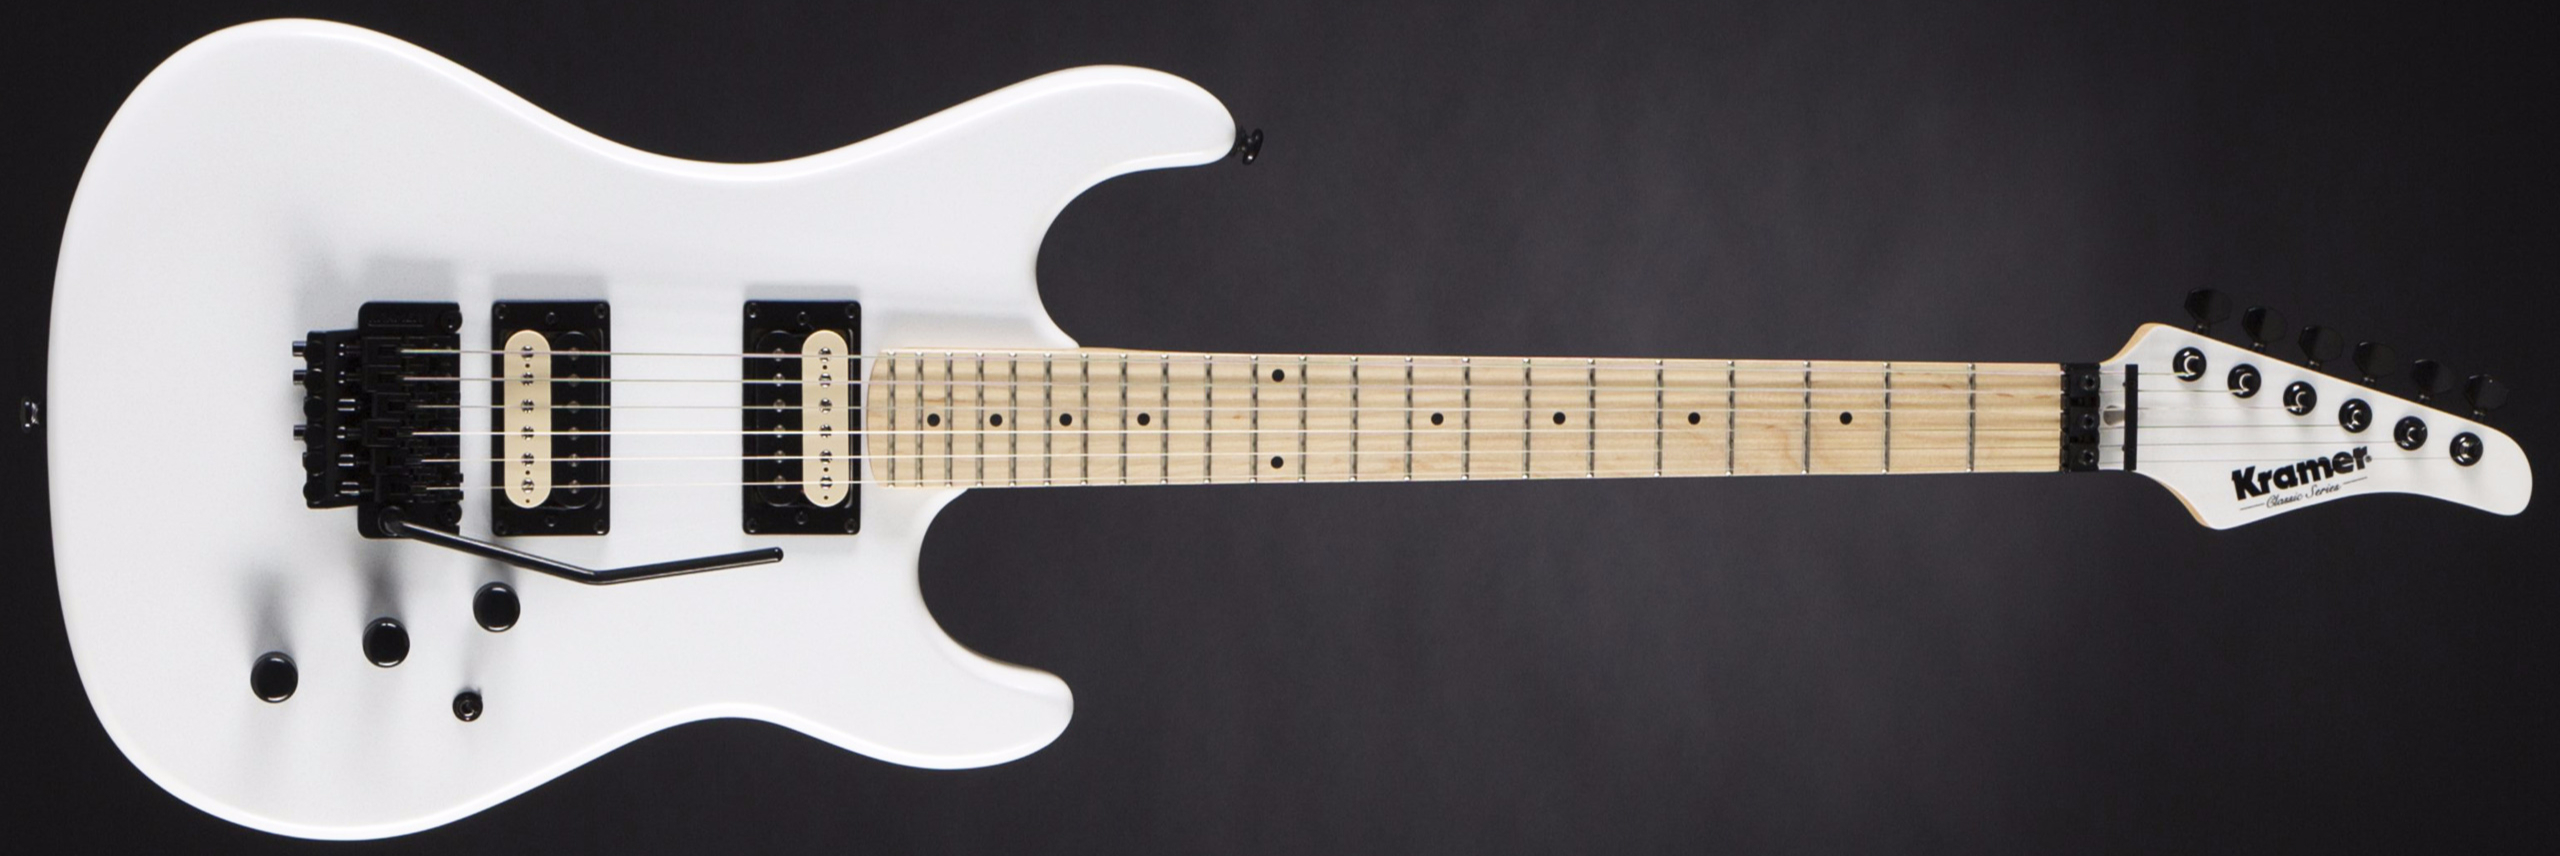 KRAMER Pacer Classic PW Pearl White